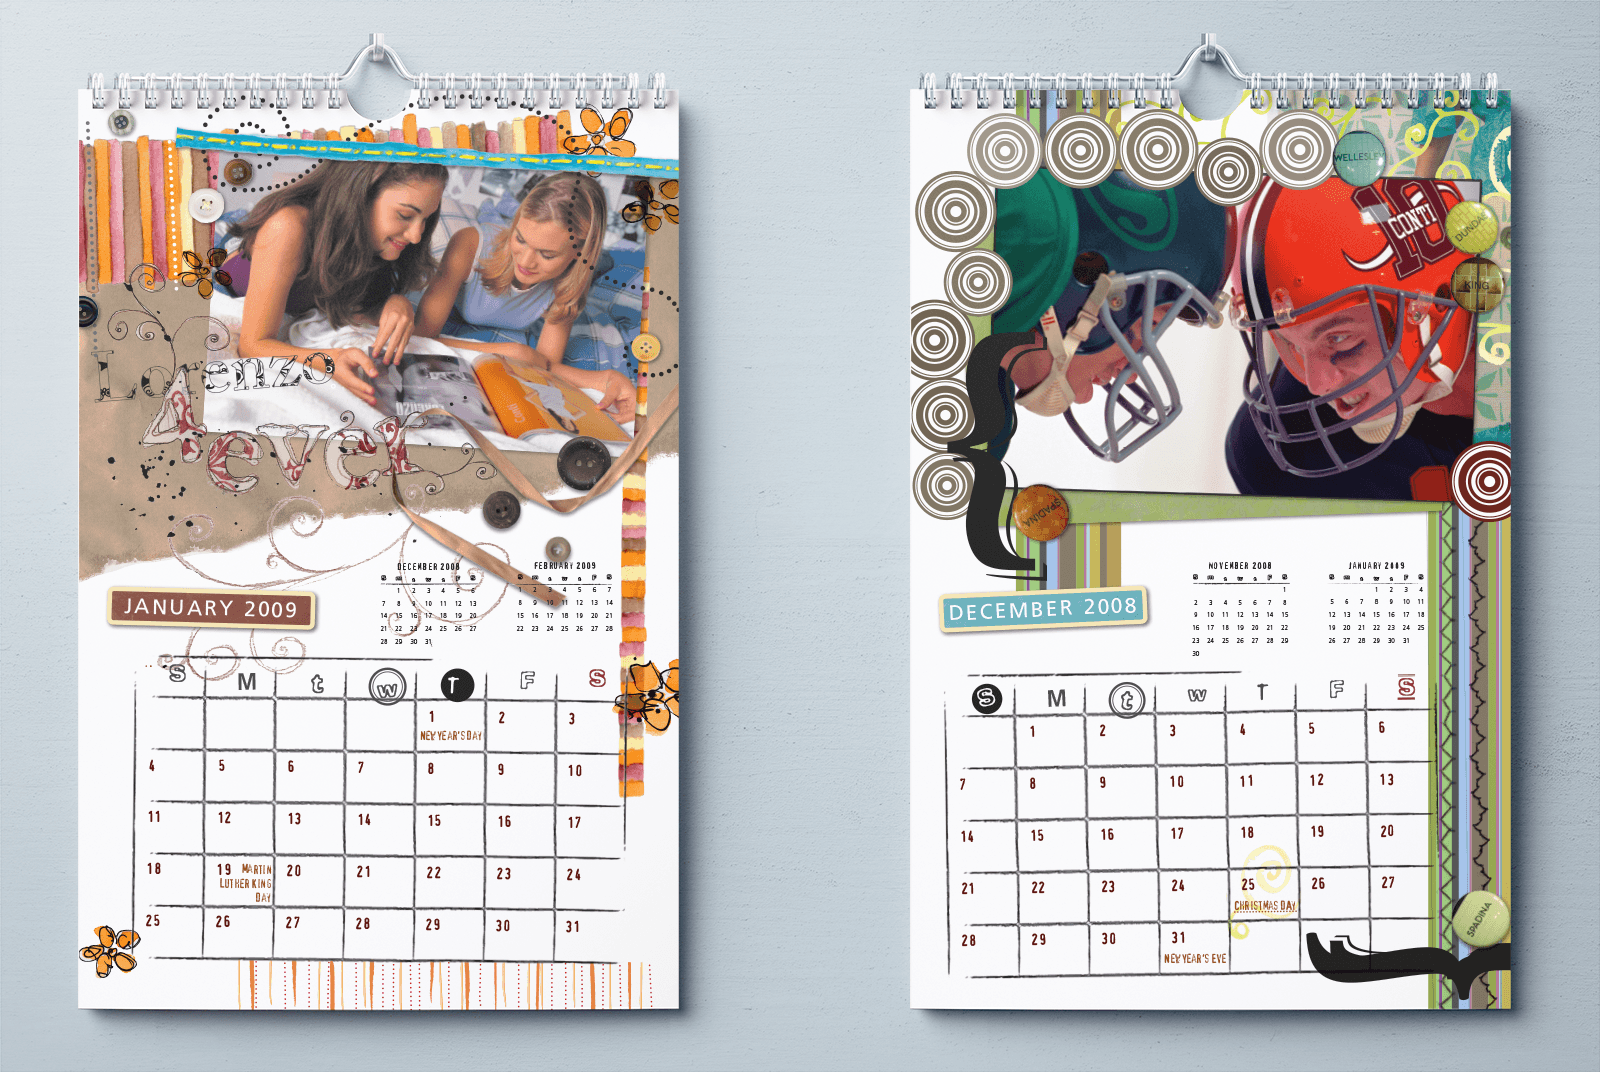 https://bigeyes.co.il/wp-content/uploads/2019/07/highschool-calendar-4.png